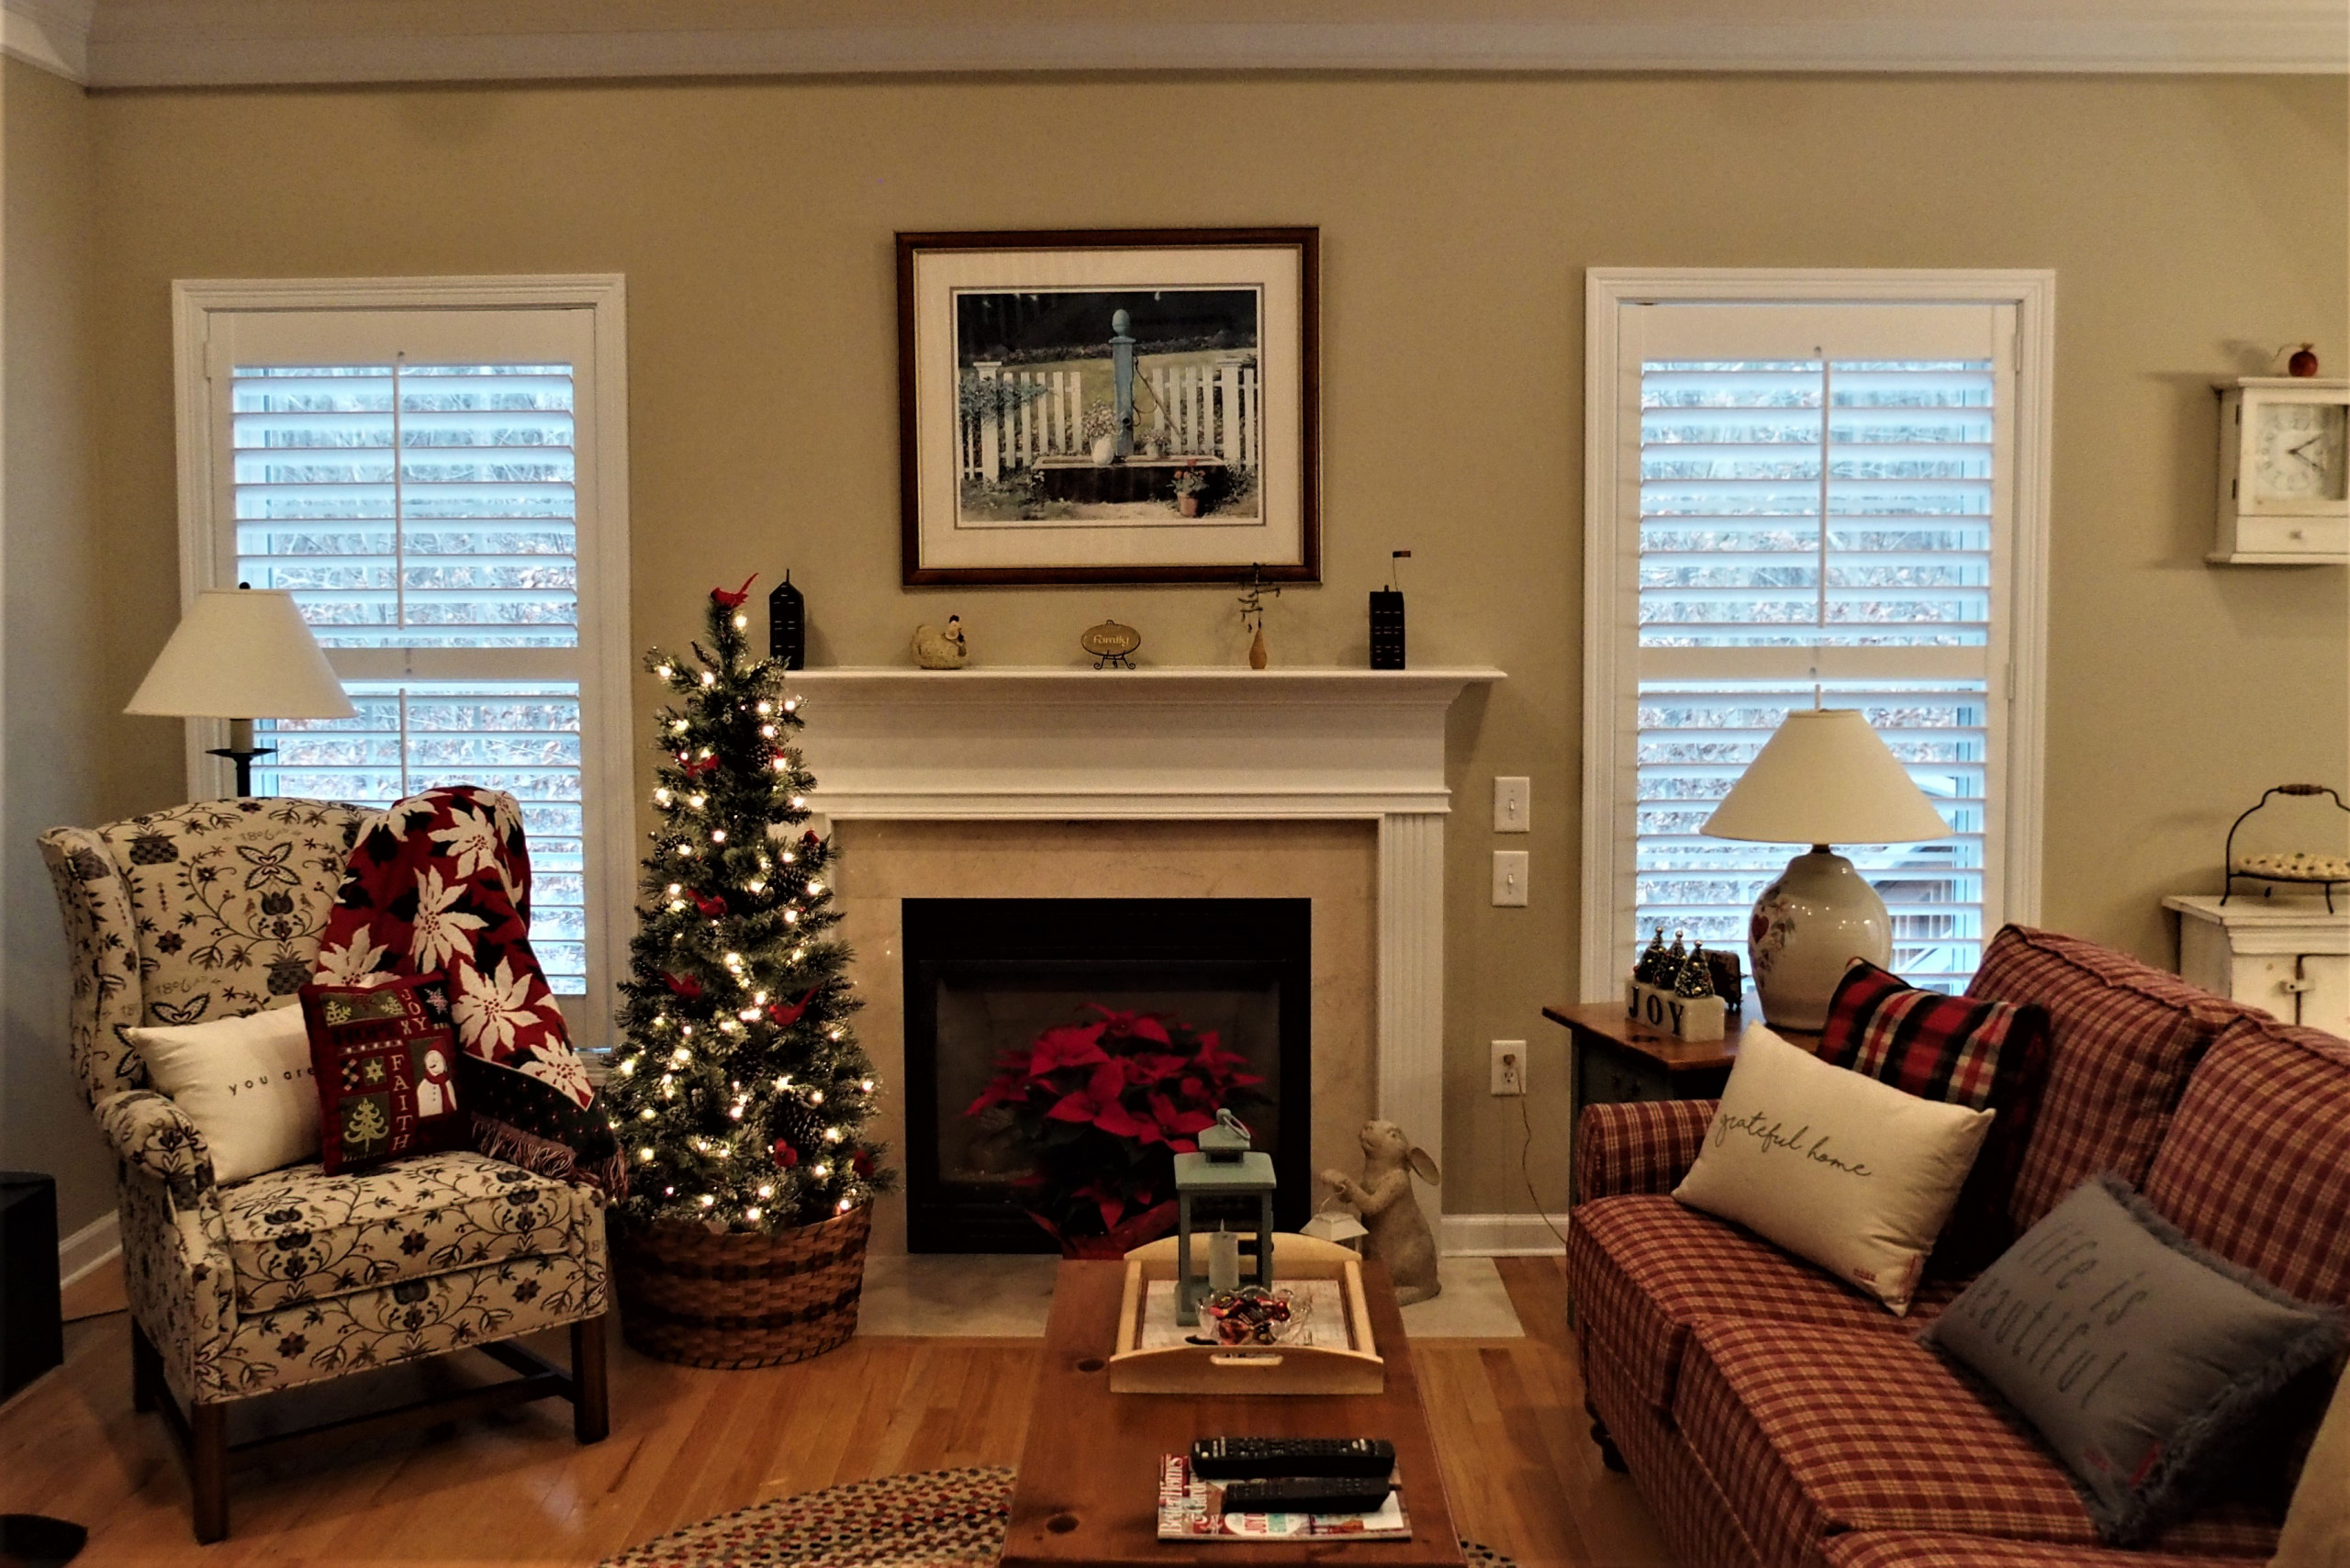 Hunter Douglas New Style Shutters for a Whole House